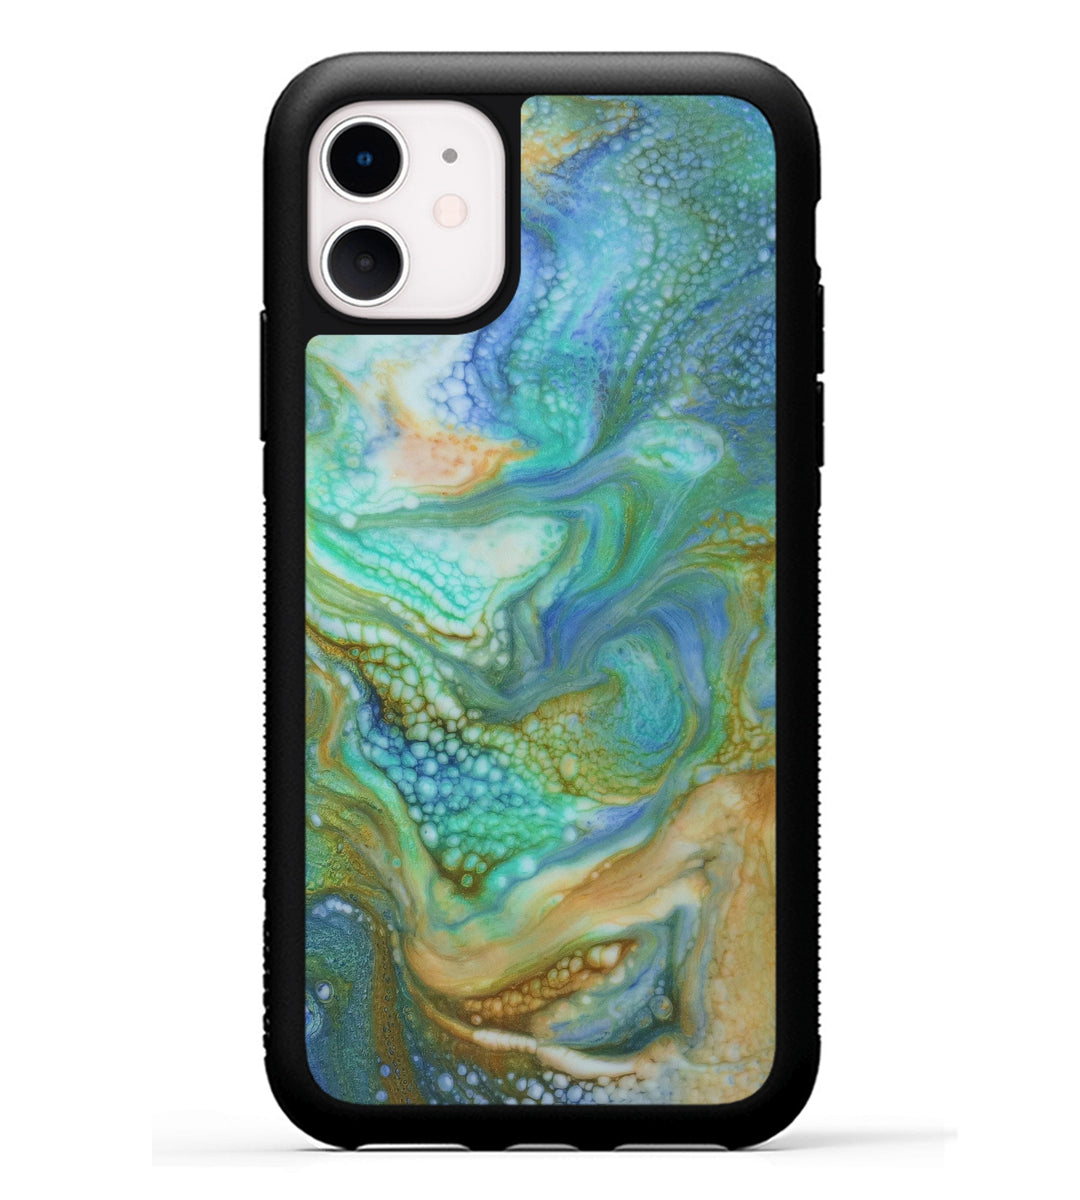 iPhone 11 Case - Batsheva (Teal & Gold, 346652)